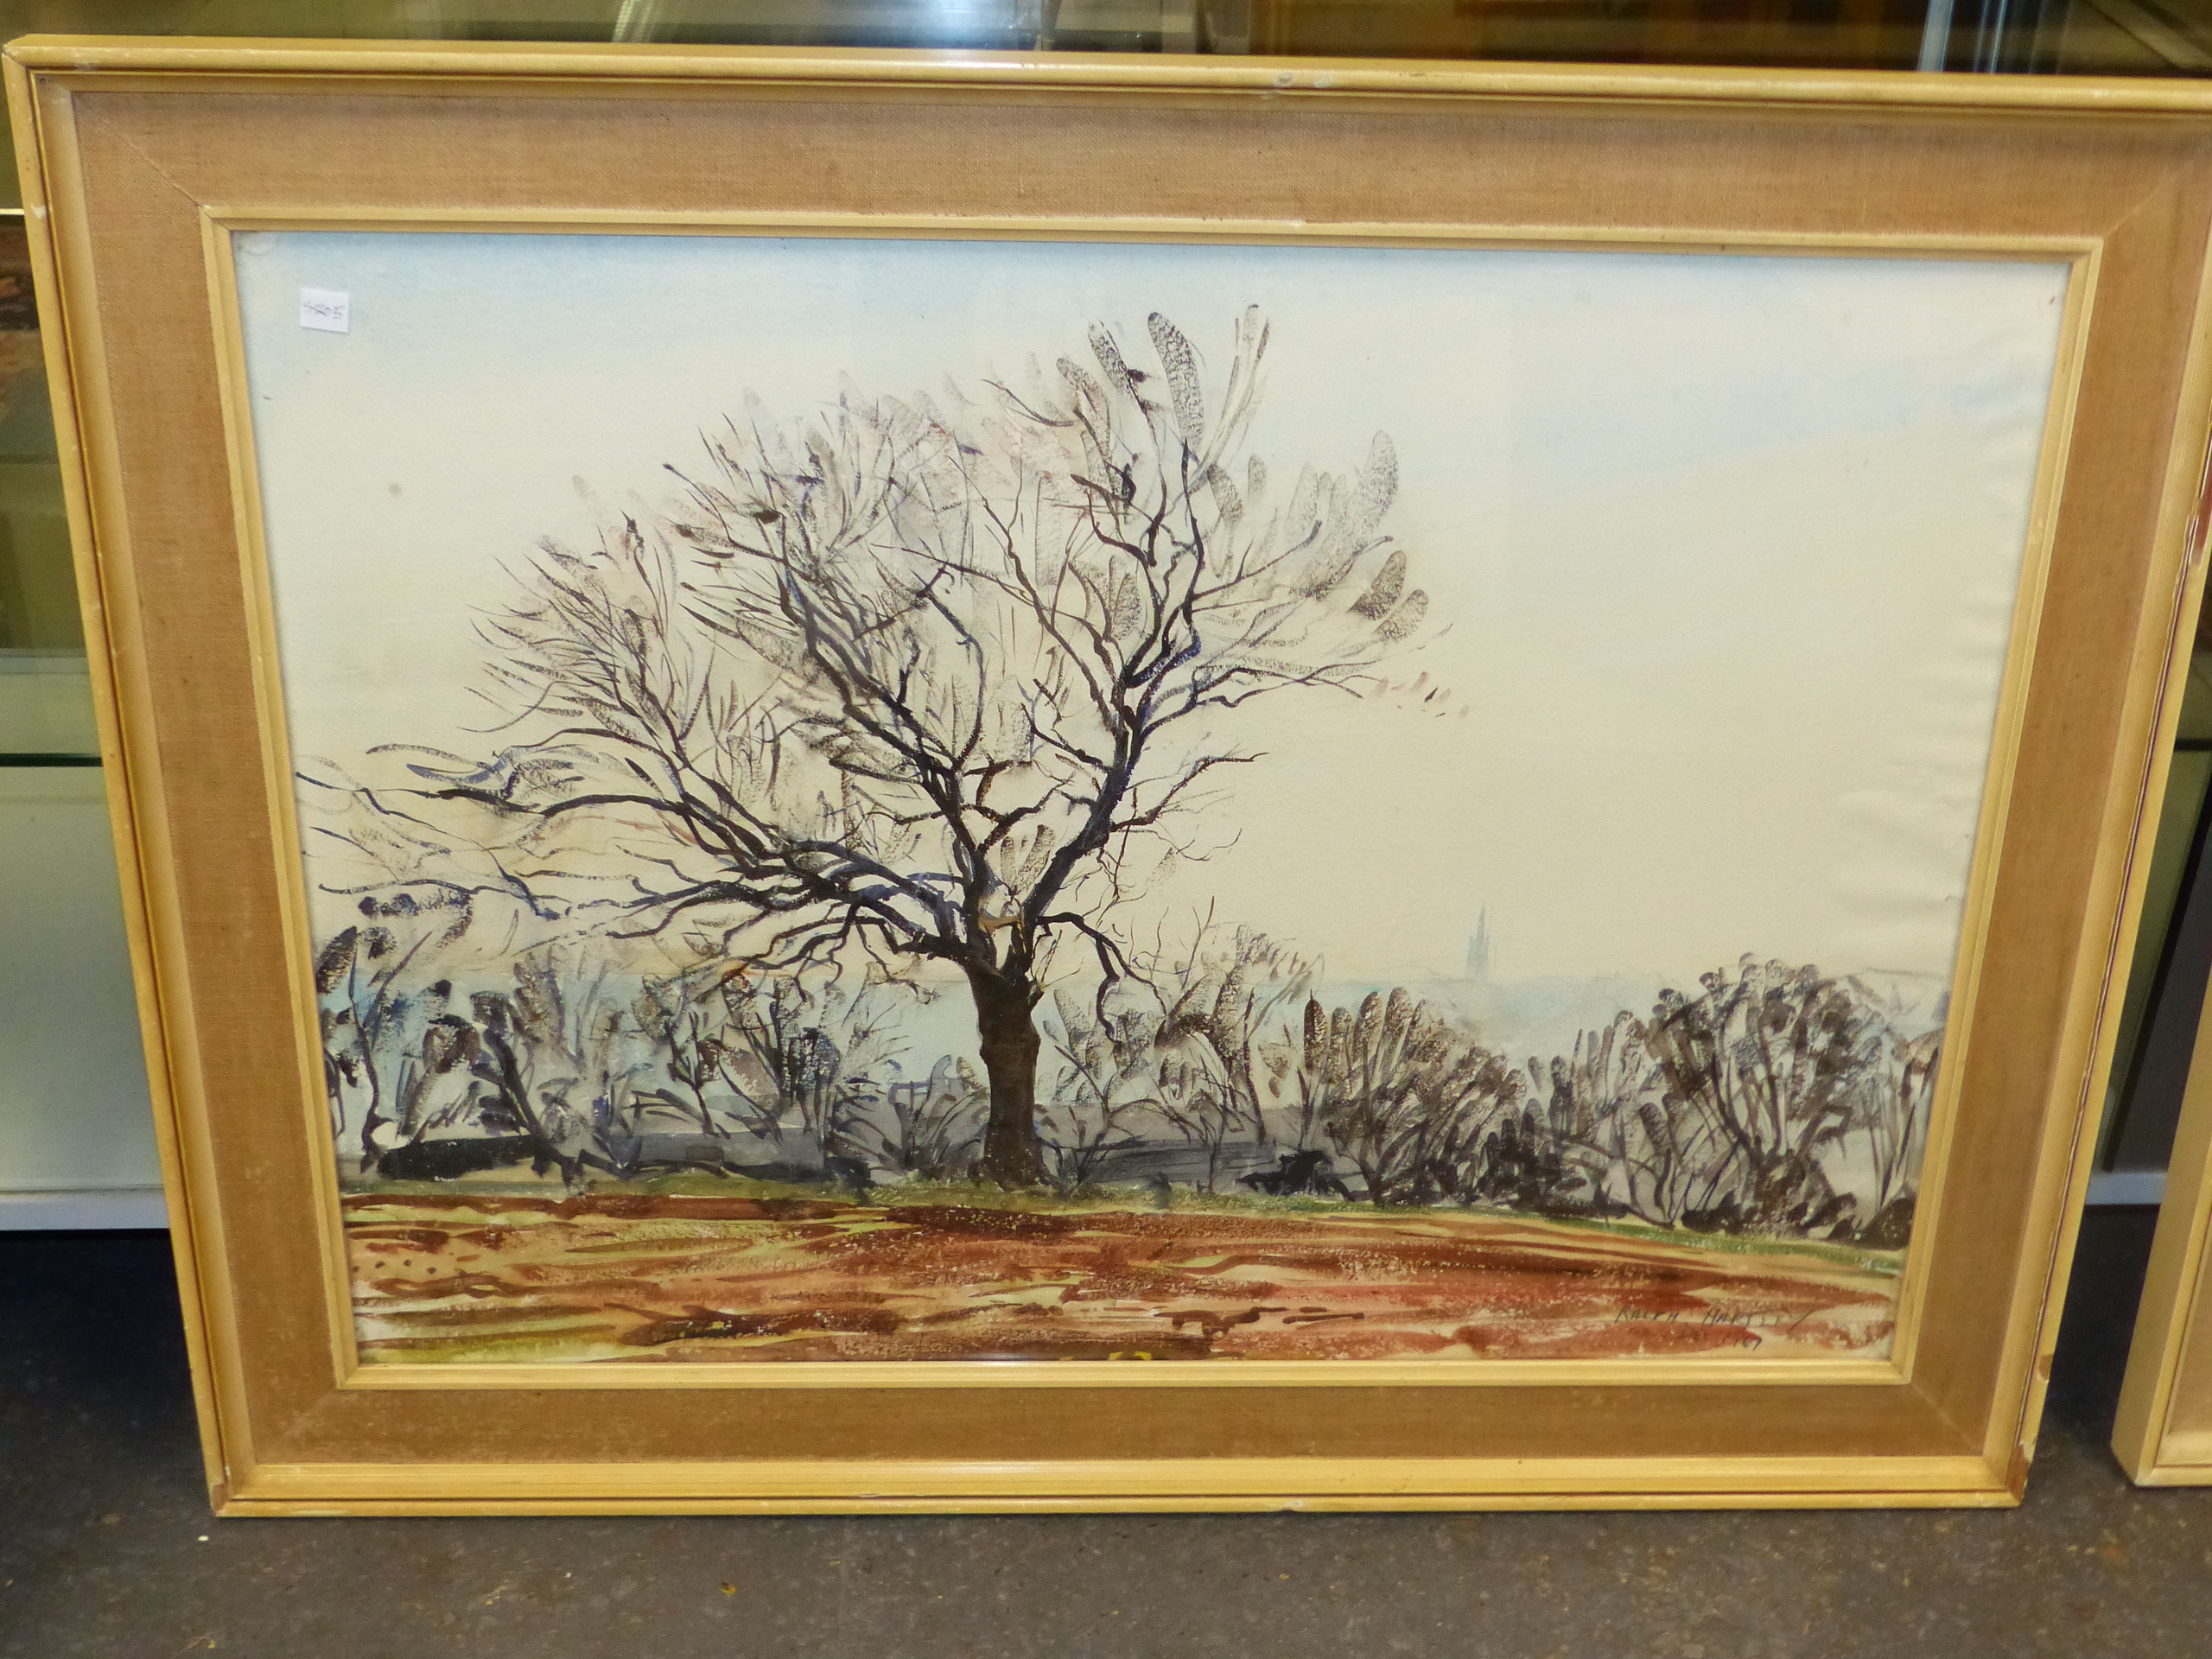 •RALPH HARTLEY (1926-1988 ARR. TWO LANDSCAPE OF TREES IN RURAL SETTINGS, SIGNED WATERCOLOURS 57 x 76 - Image 5 of 7